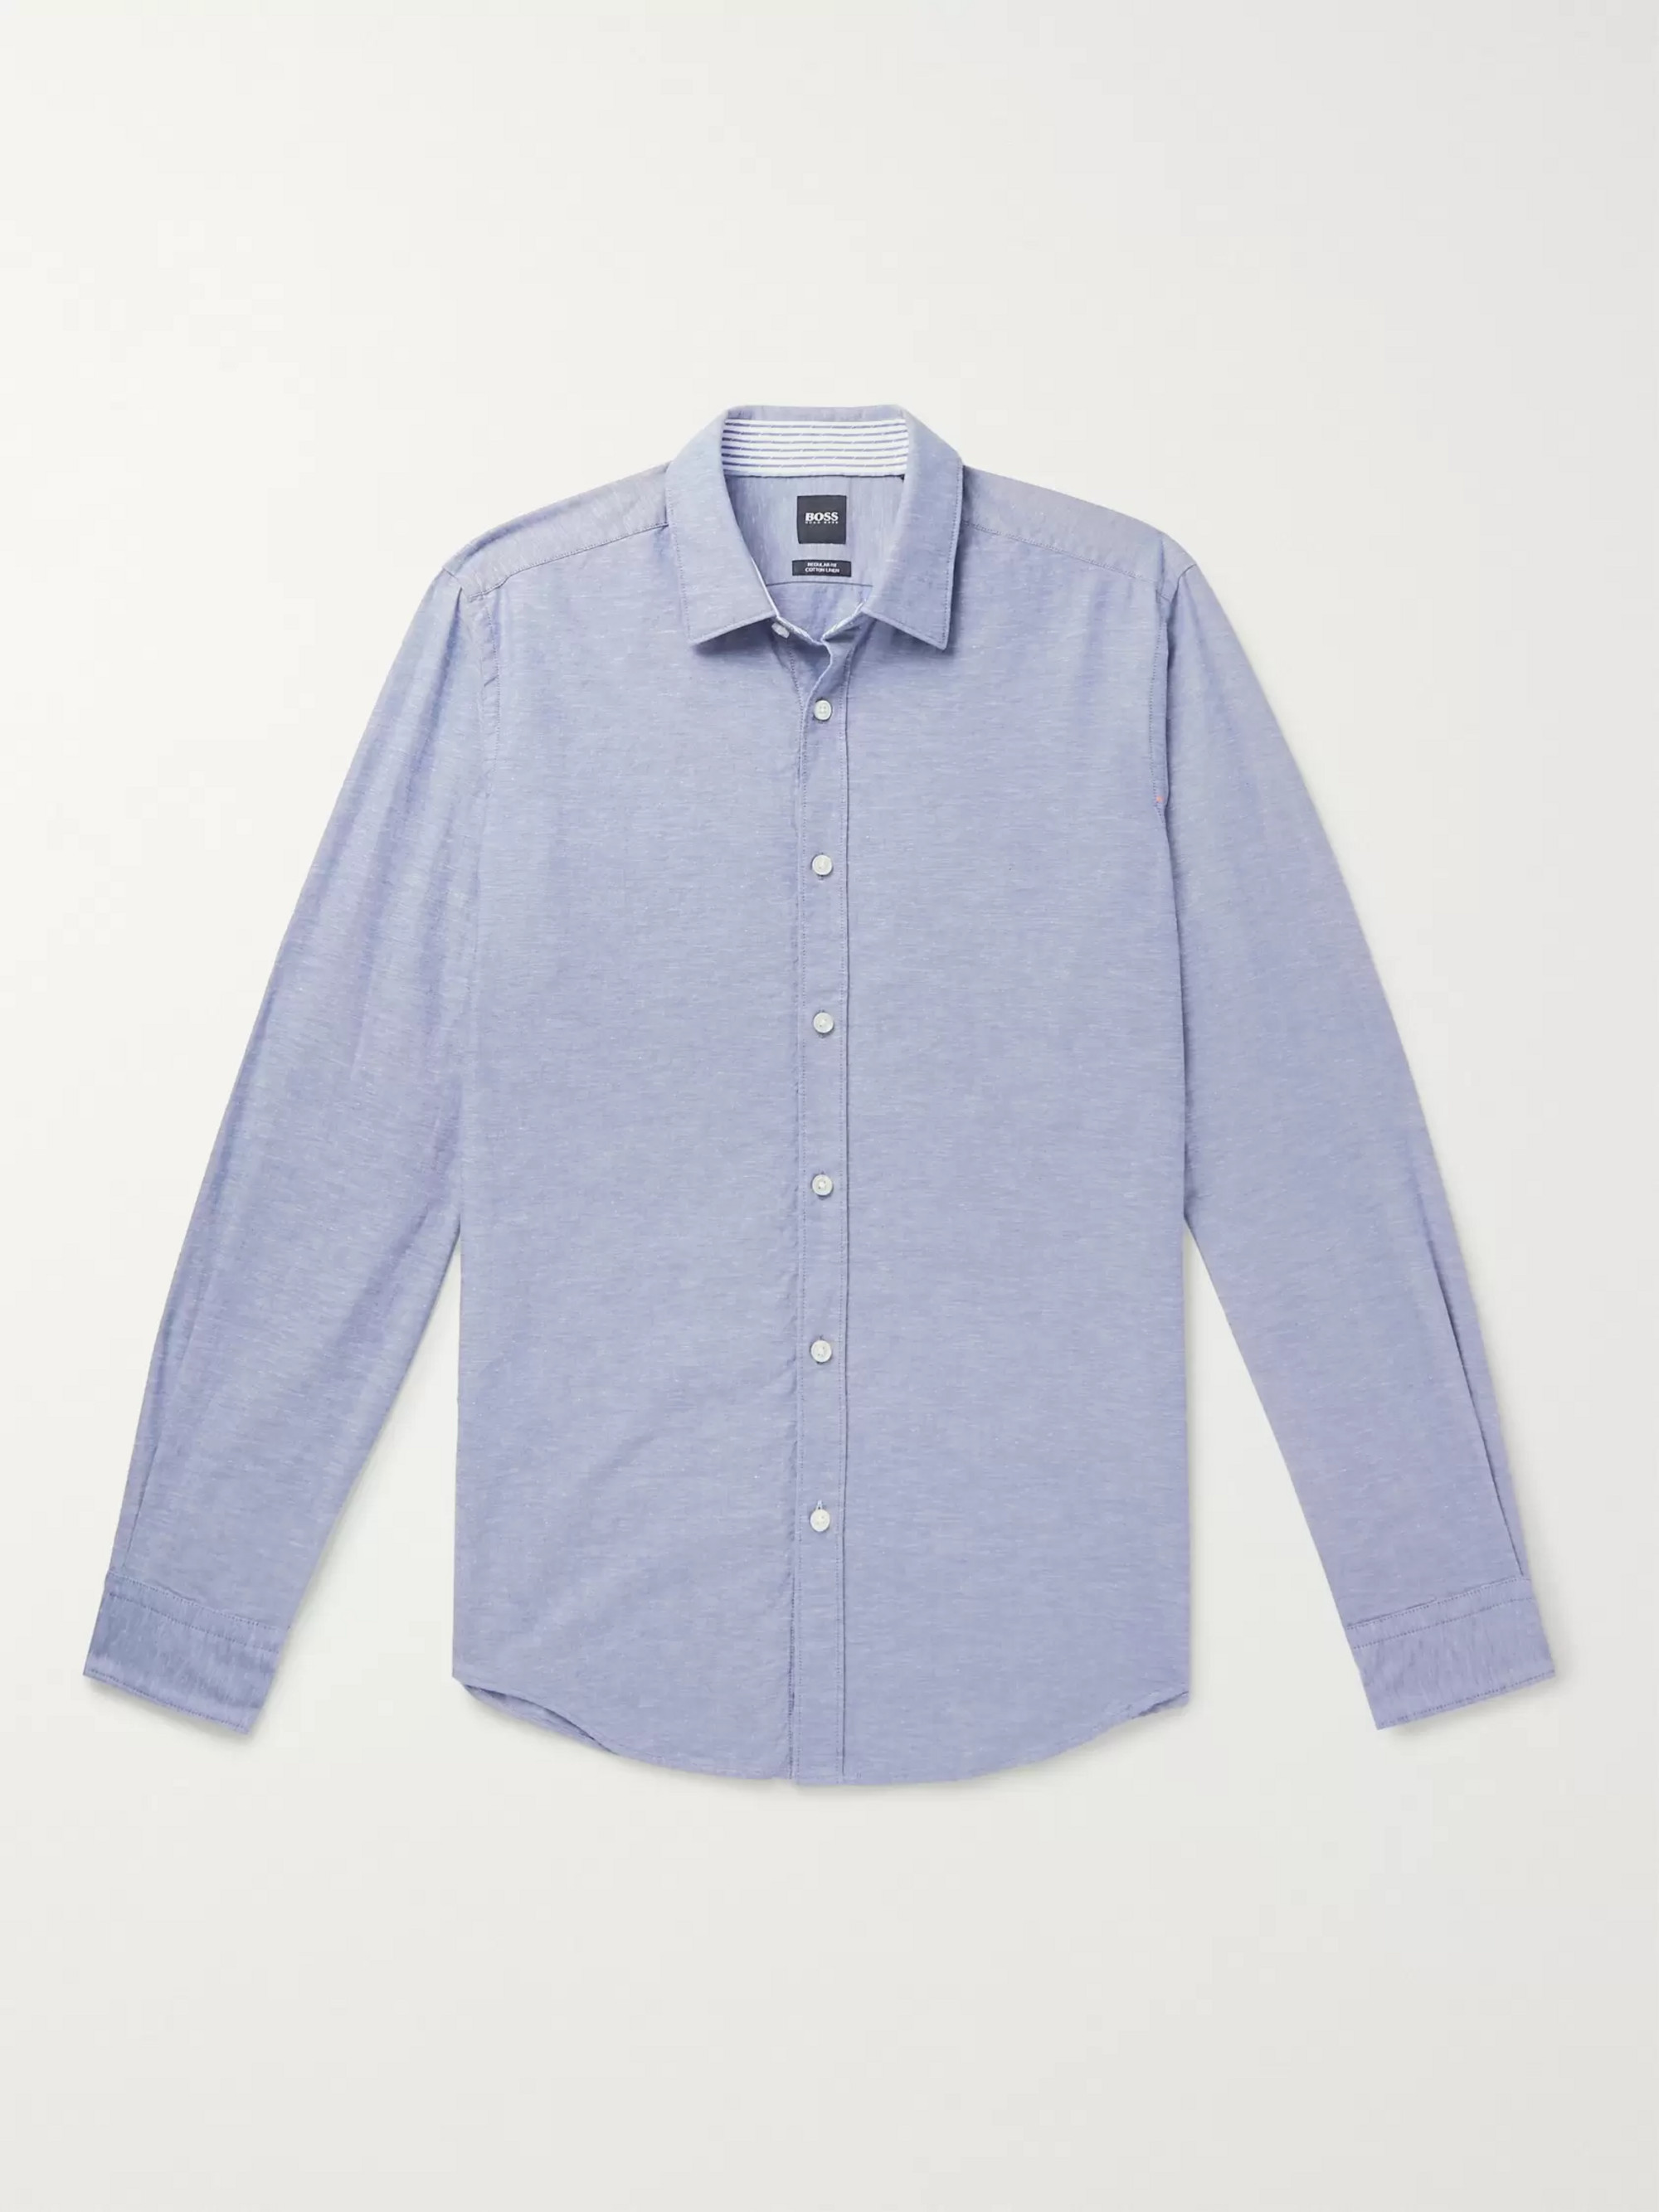 Hugo Boss Lukas Cotton and Linen-Blend Shirt